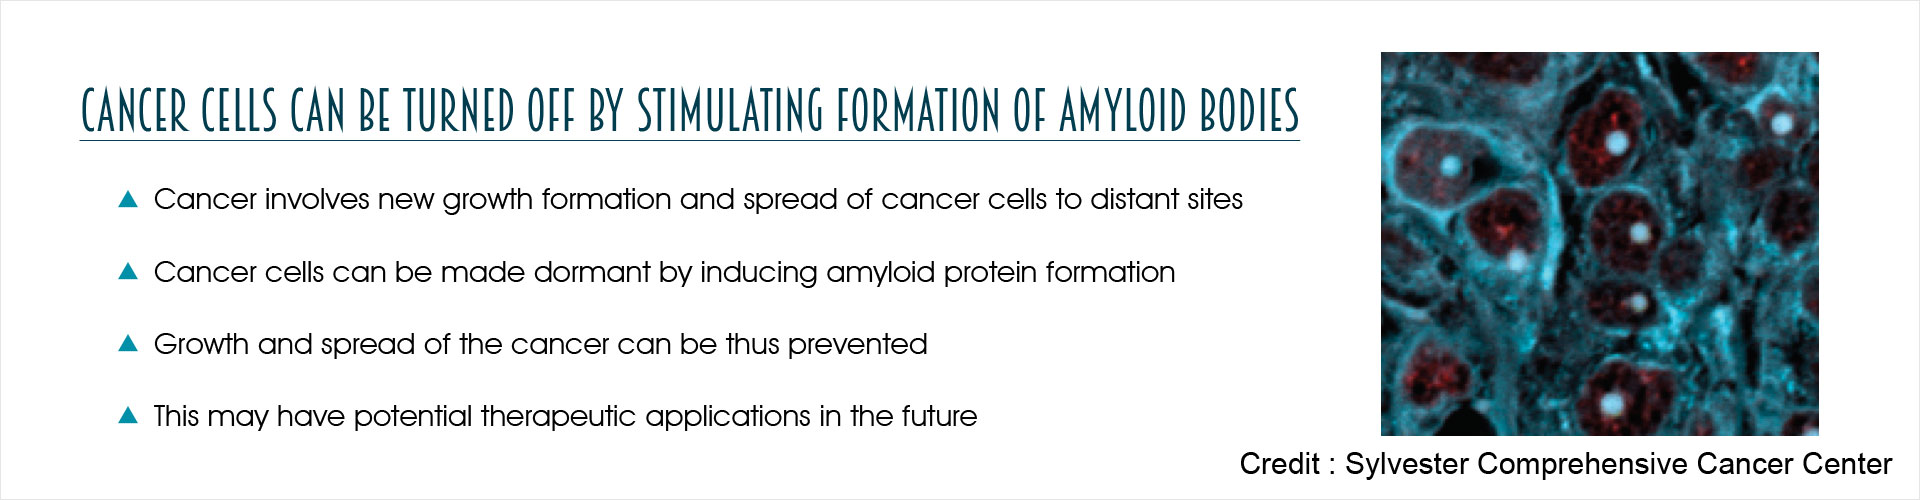 Cancer Cells Can Be Turned Off by Stimulating Formation of Amyloid Bodies